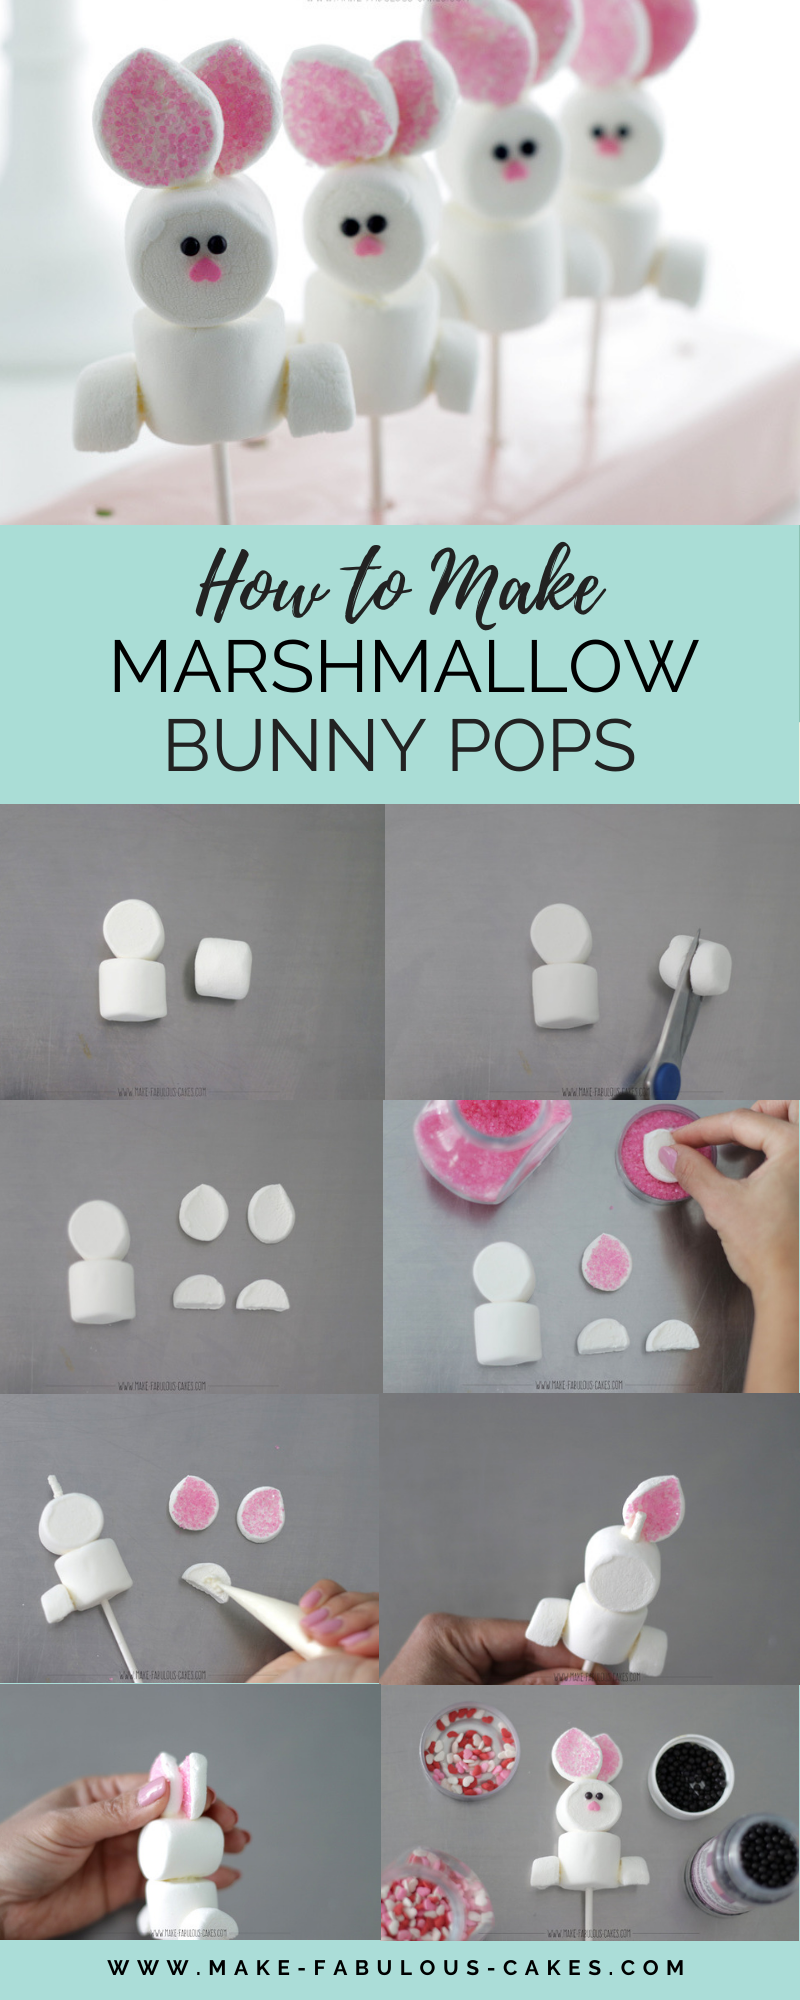 Marshmallow Bunnies Tutorial